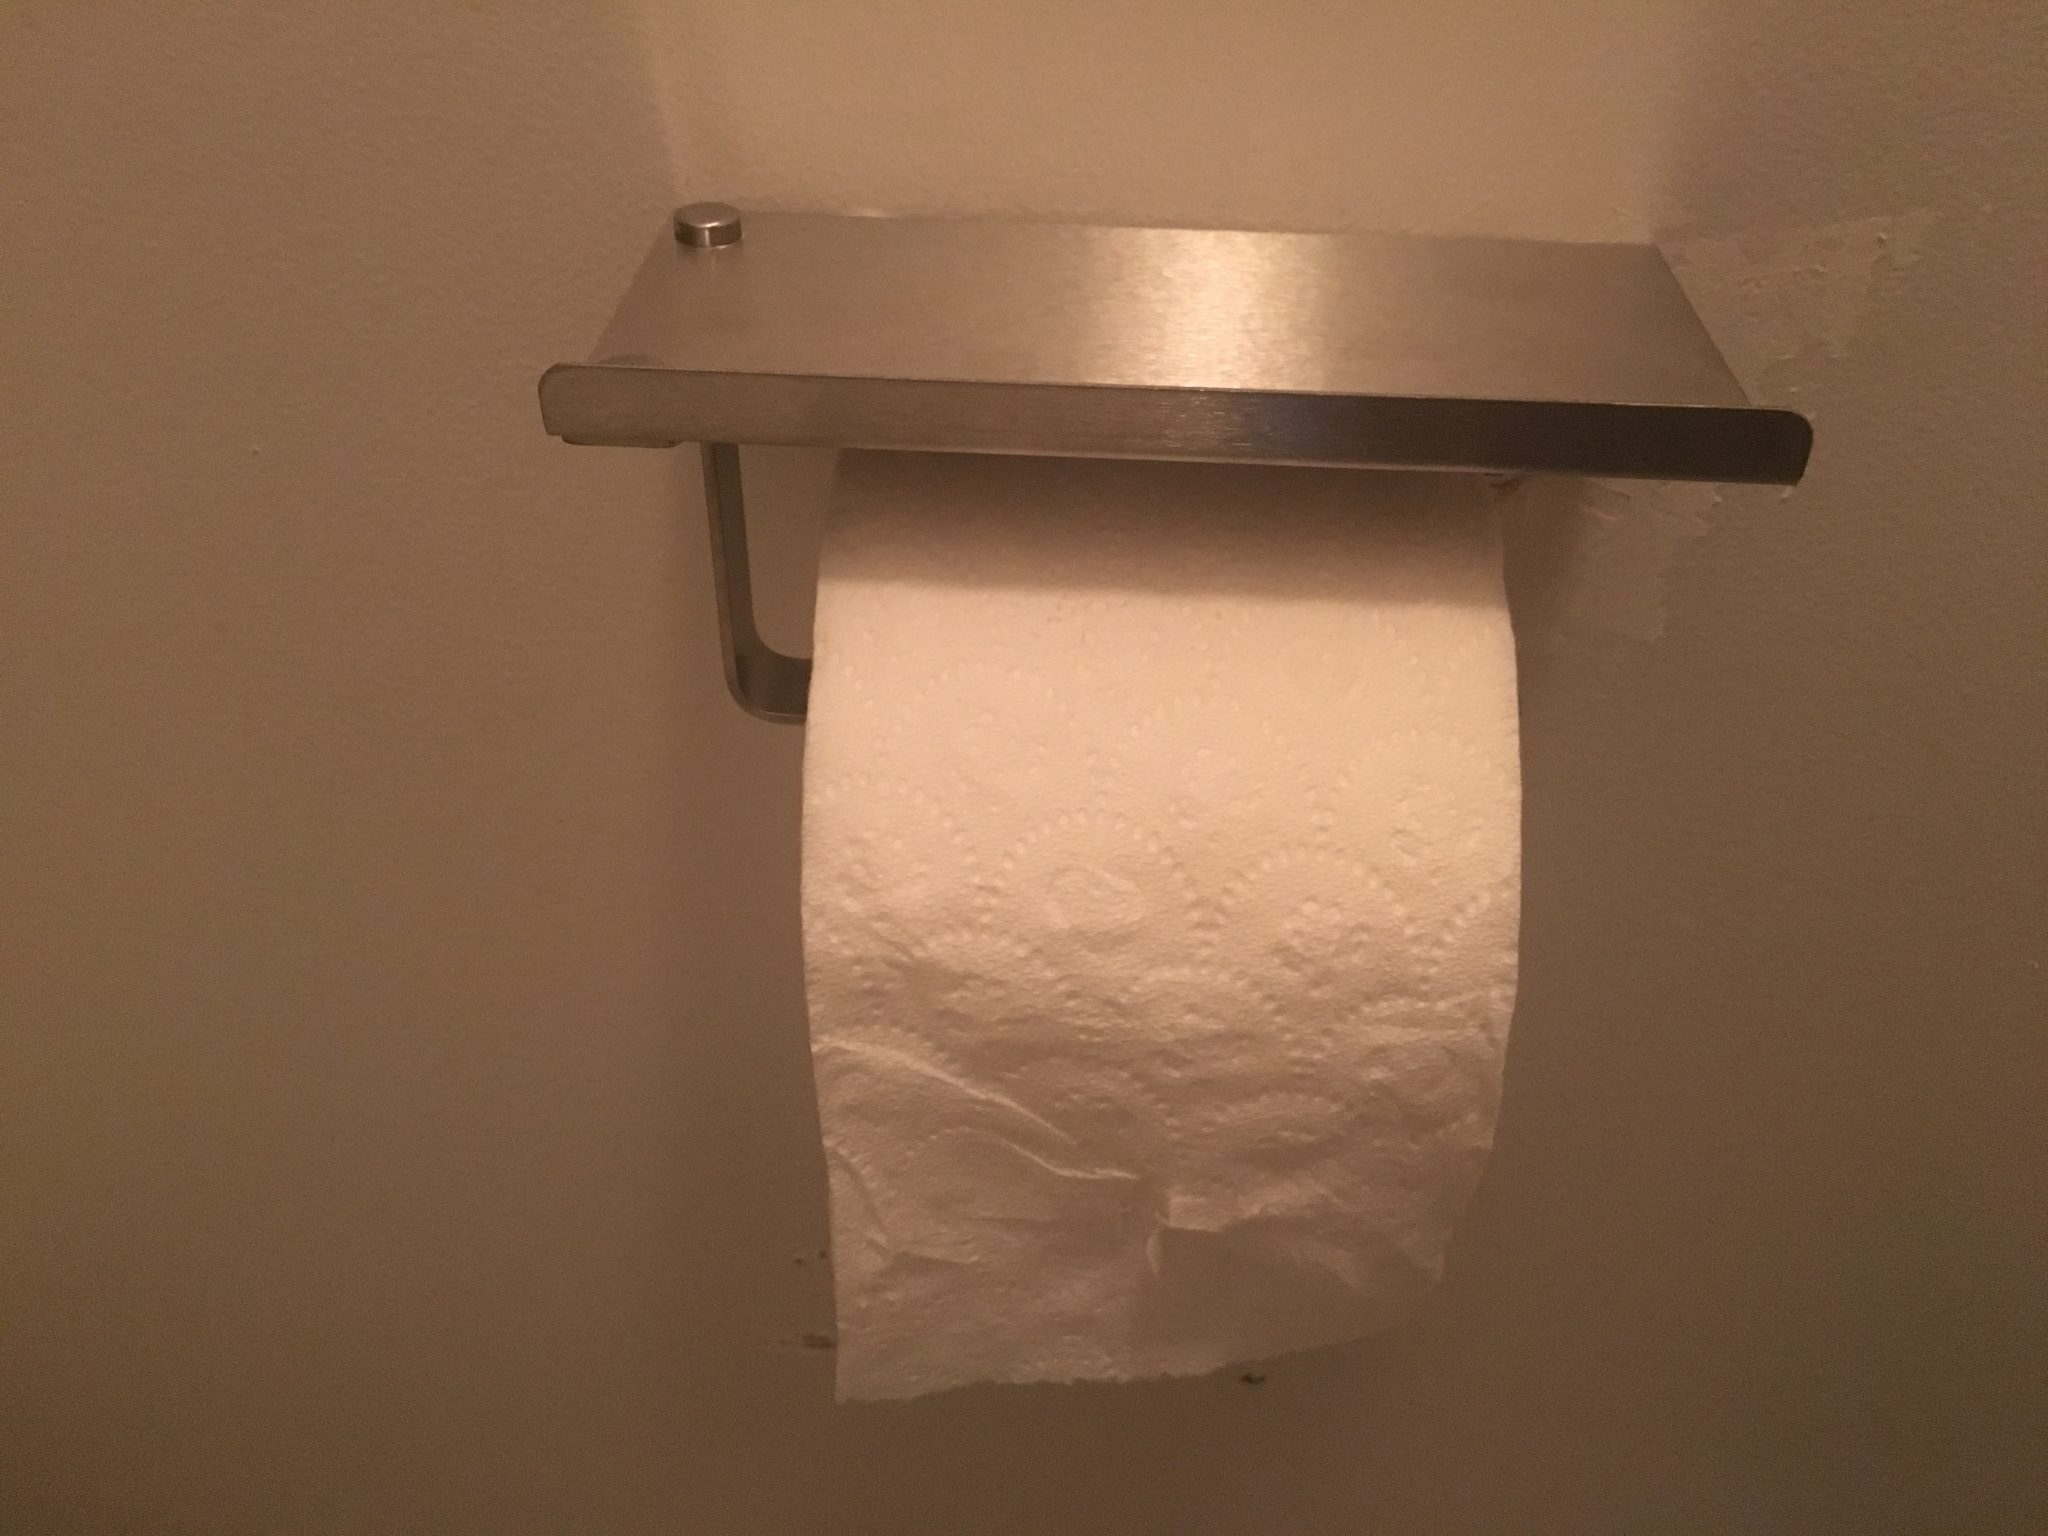 Cool Toilet Paper Storage: Unique Toilet Paper Holder With Cell Phone Tray